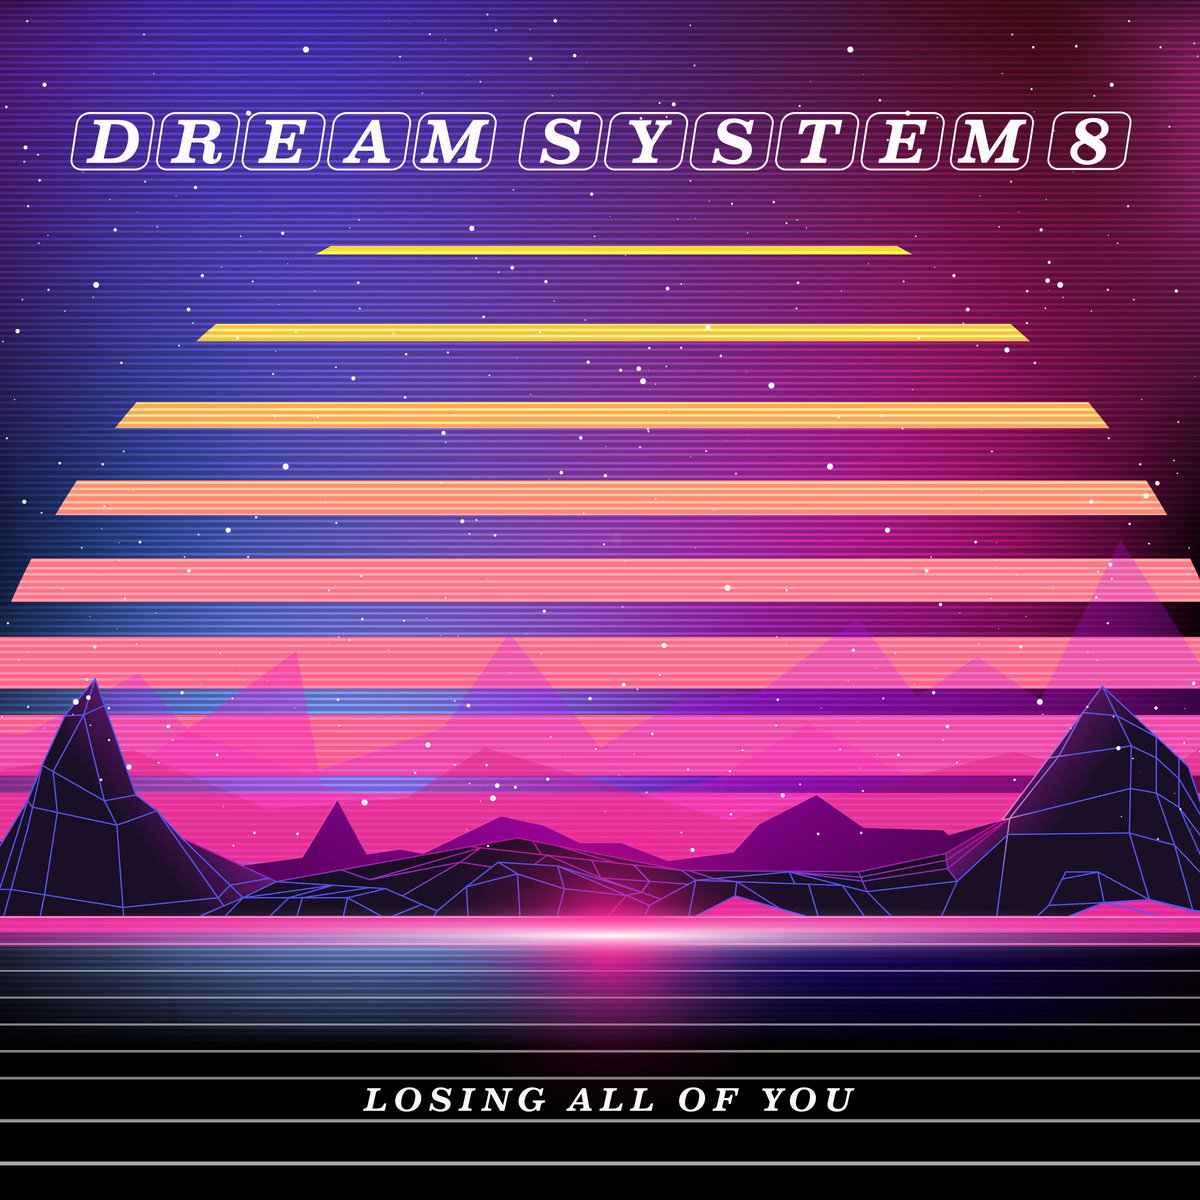 Losing All of You by dream system 8